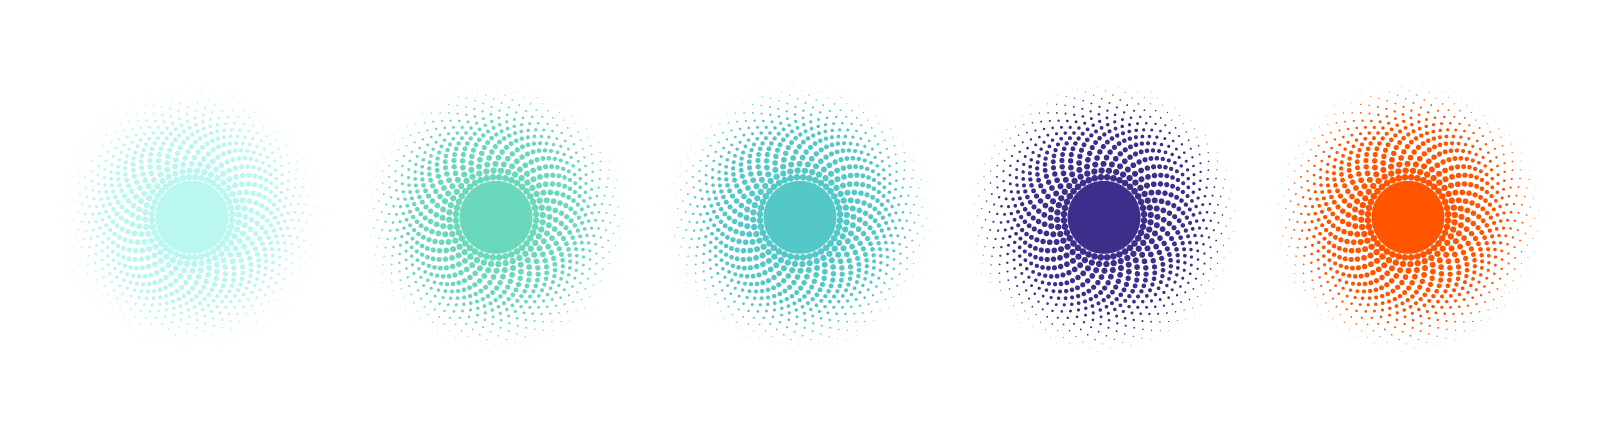 Think Mircal logo spirals colour variations